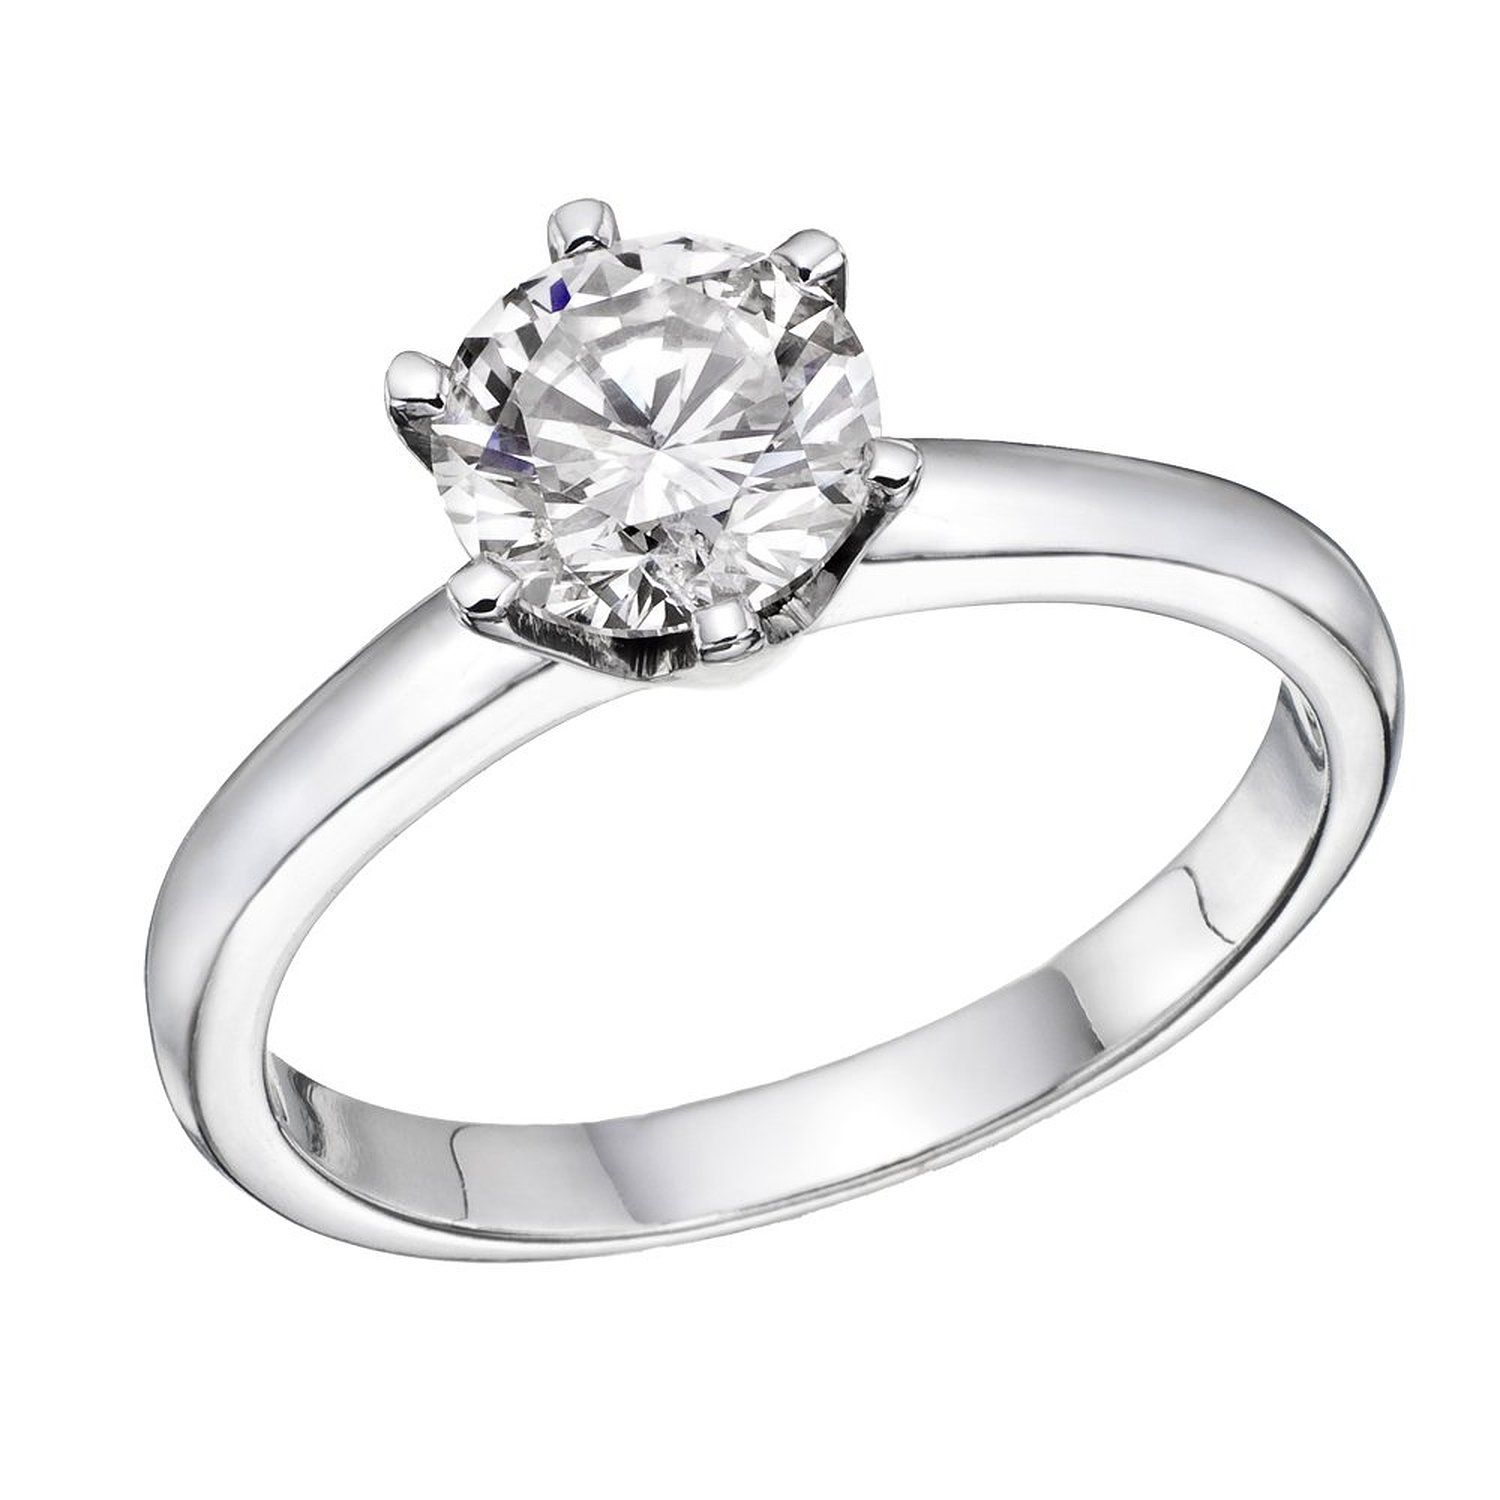 1.00 ct GIA Certified Diamond Engagement Ring in 14k White Gold (1.00 ct, J Color, SI2 Clarity) Meticulously crafted in 14k white-gold, This exclusive design by NATURAL DIAMOND is available to you directly from the source. This  Read more http://cosmeticcastle.net/1-00-ct-gia-certified-diamond-engagement-ring-in-14k-white-gold-1-00-ct-j-color-si2-clarity/  Visit http://cosmeticcastle.net to read cosmetic reviews